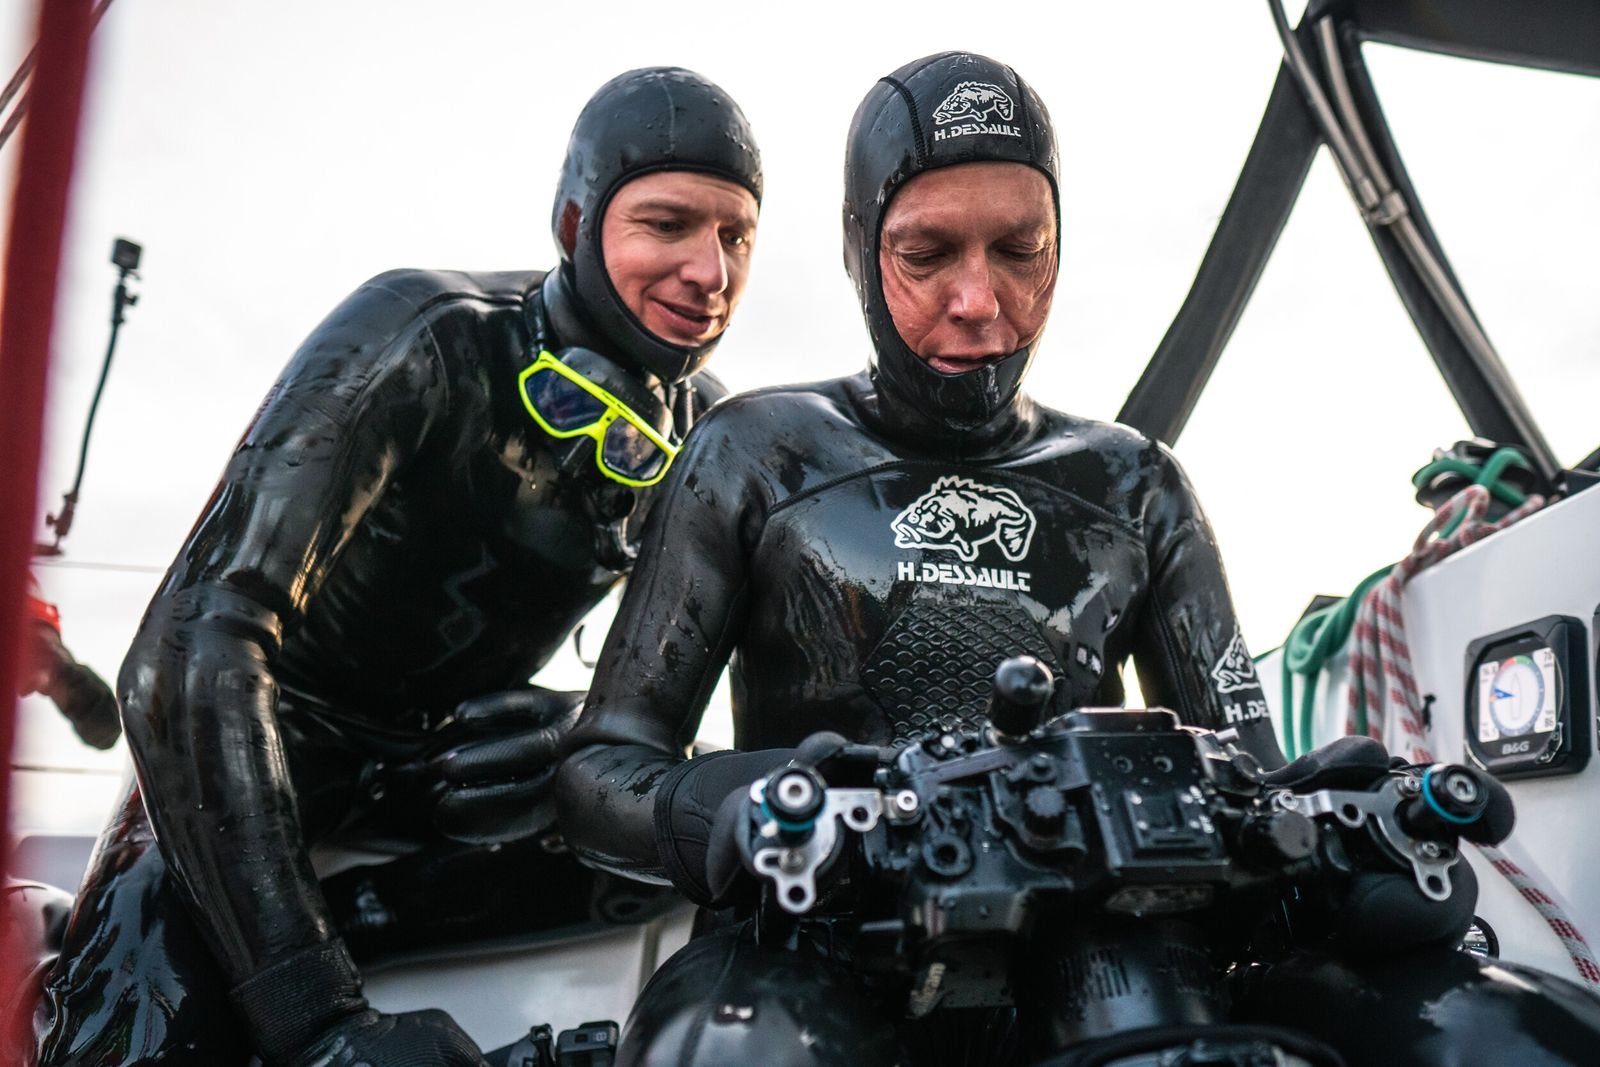 The team hopes their work studying the sperm whales at this latitude will give insight into ...